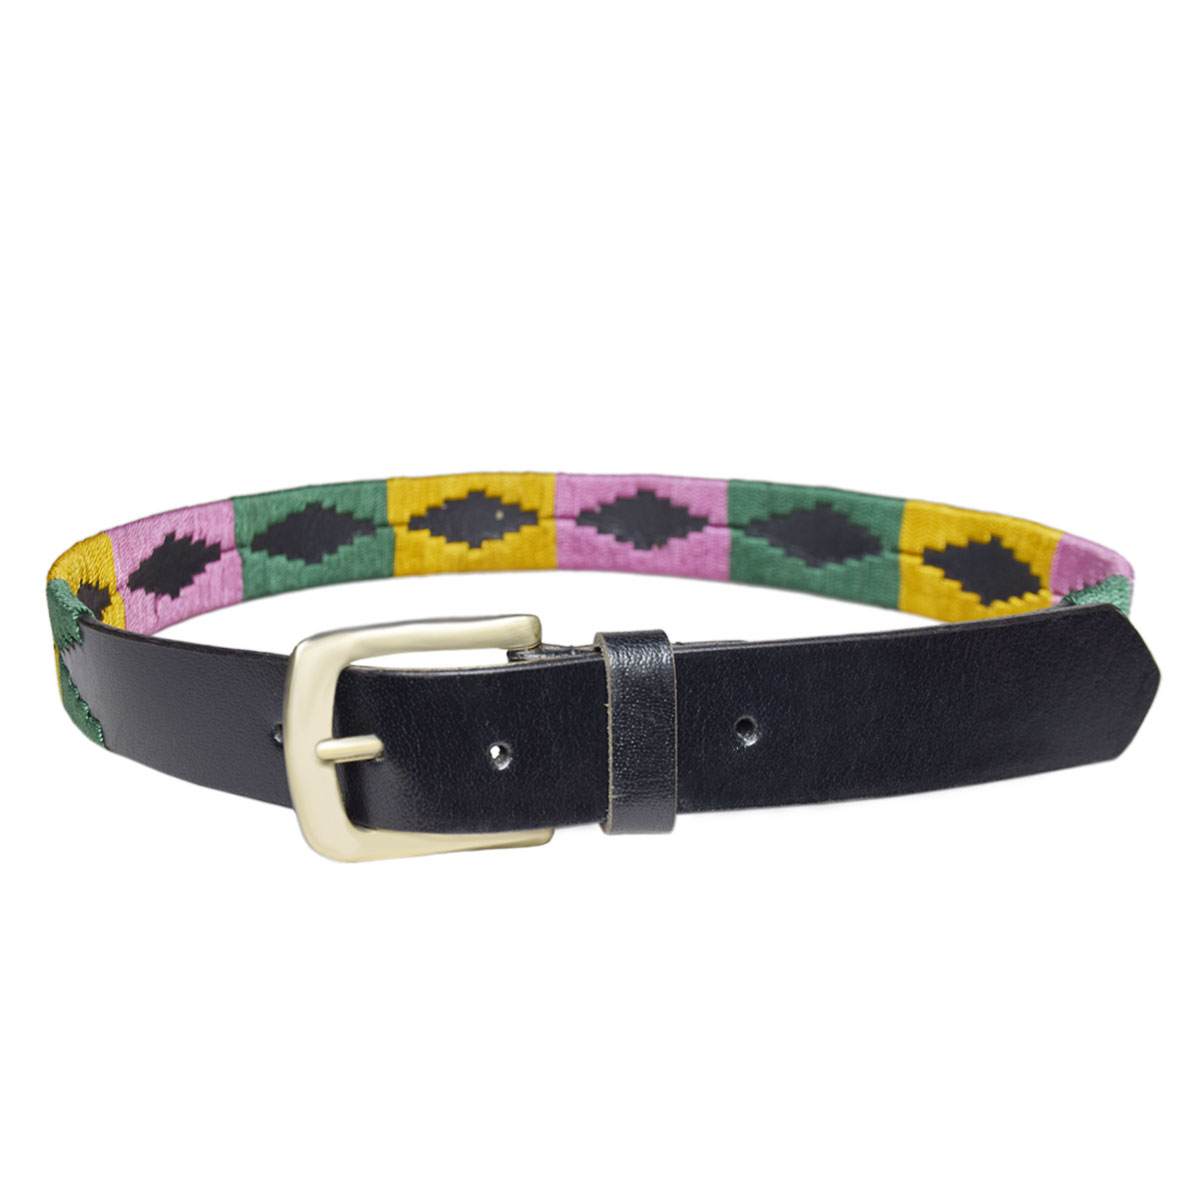 BLACK POLO BELT WITH MULTICOLOR DESIGN 1.5 INCH